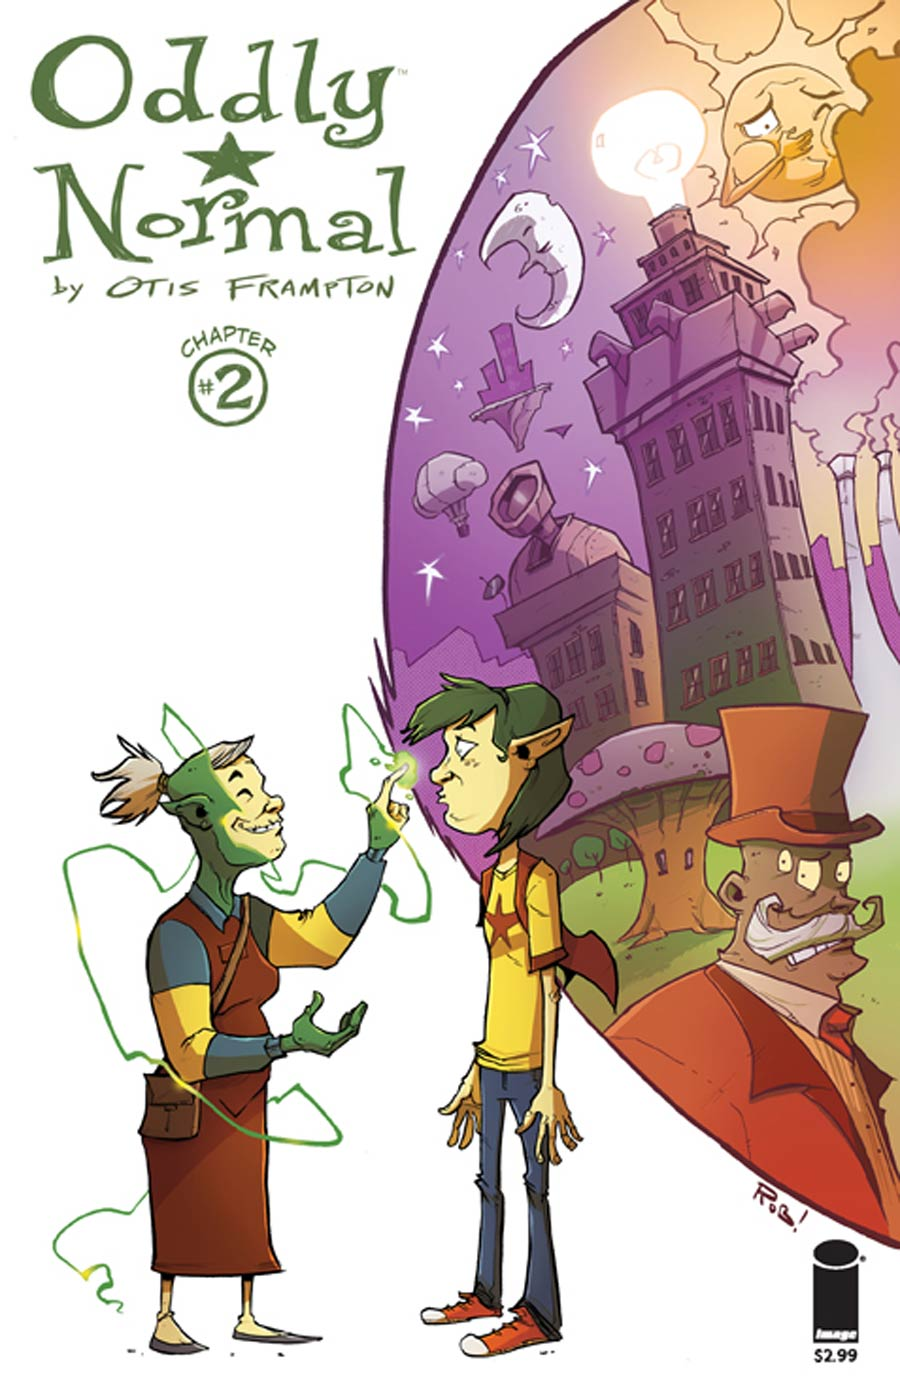 Oddly Normal Vol 2 #2 Cover B Rob Guillory